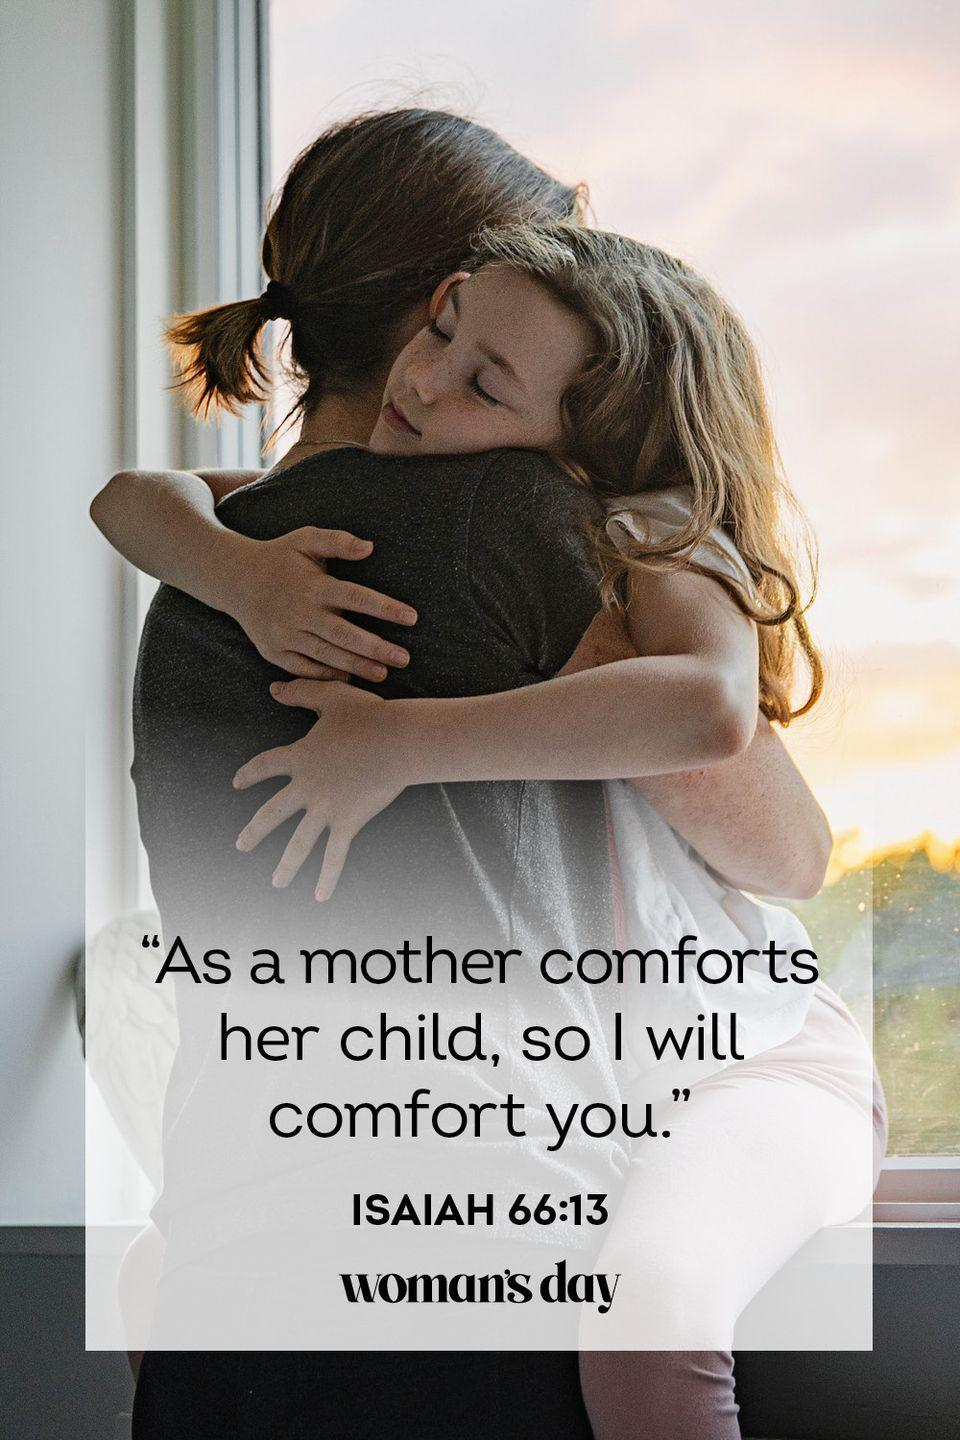 "<p>""As a mother comforts her child, so I will comfort you.""</p><p><strong>The Good News:</strong> God's love can be felt through a mother's love.</p>"